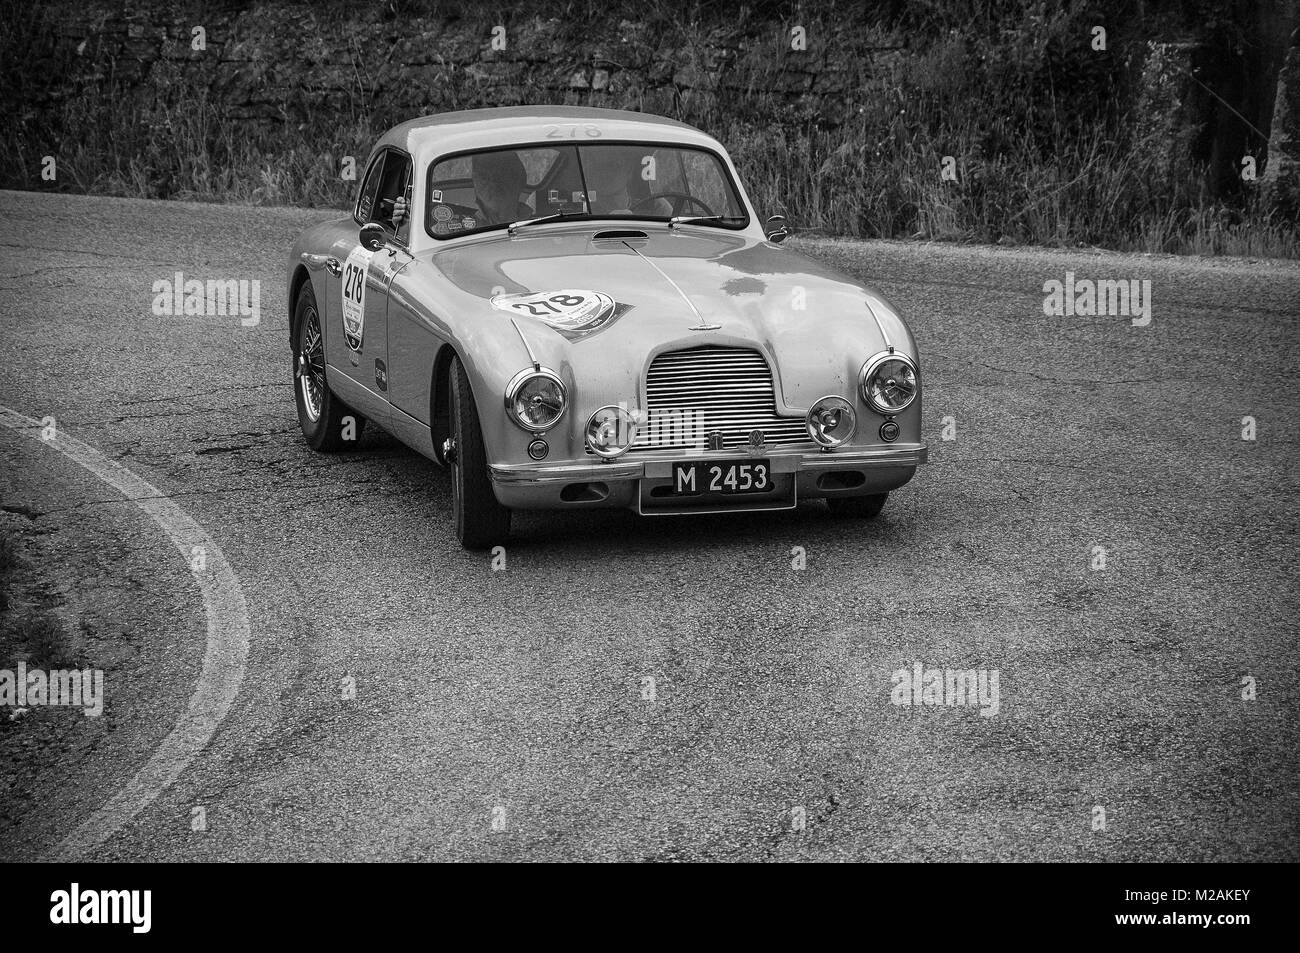 ASTON MARTIN DB 2 Vantage 1953 on an old racing car in rally Mille ...